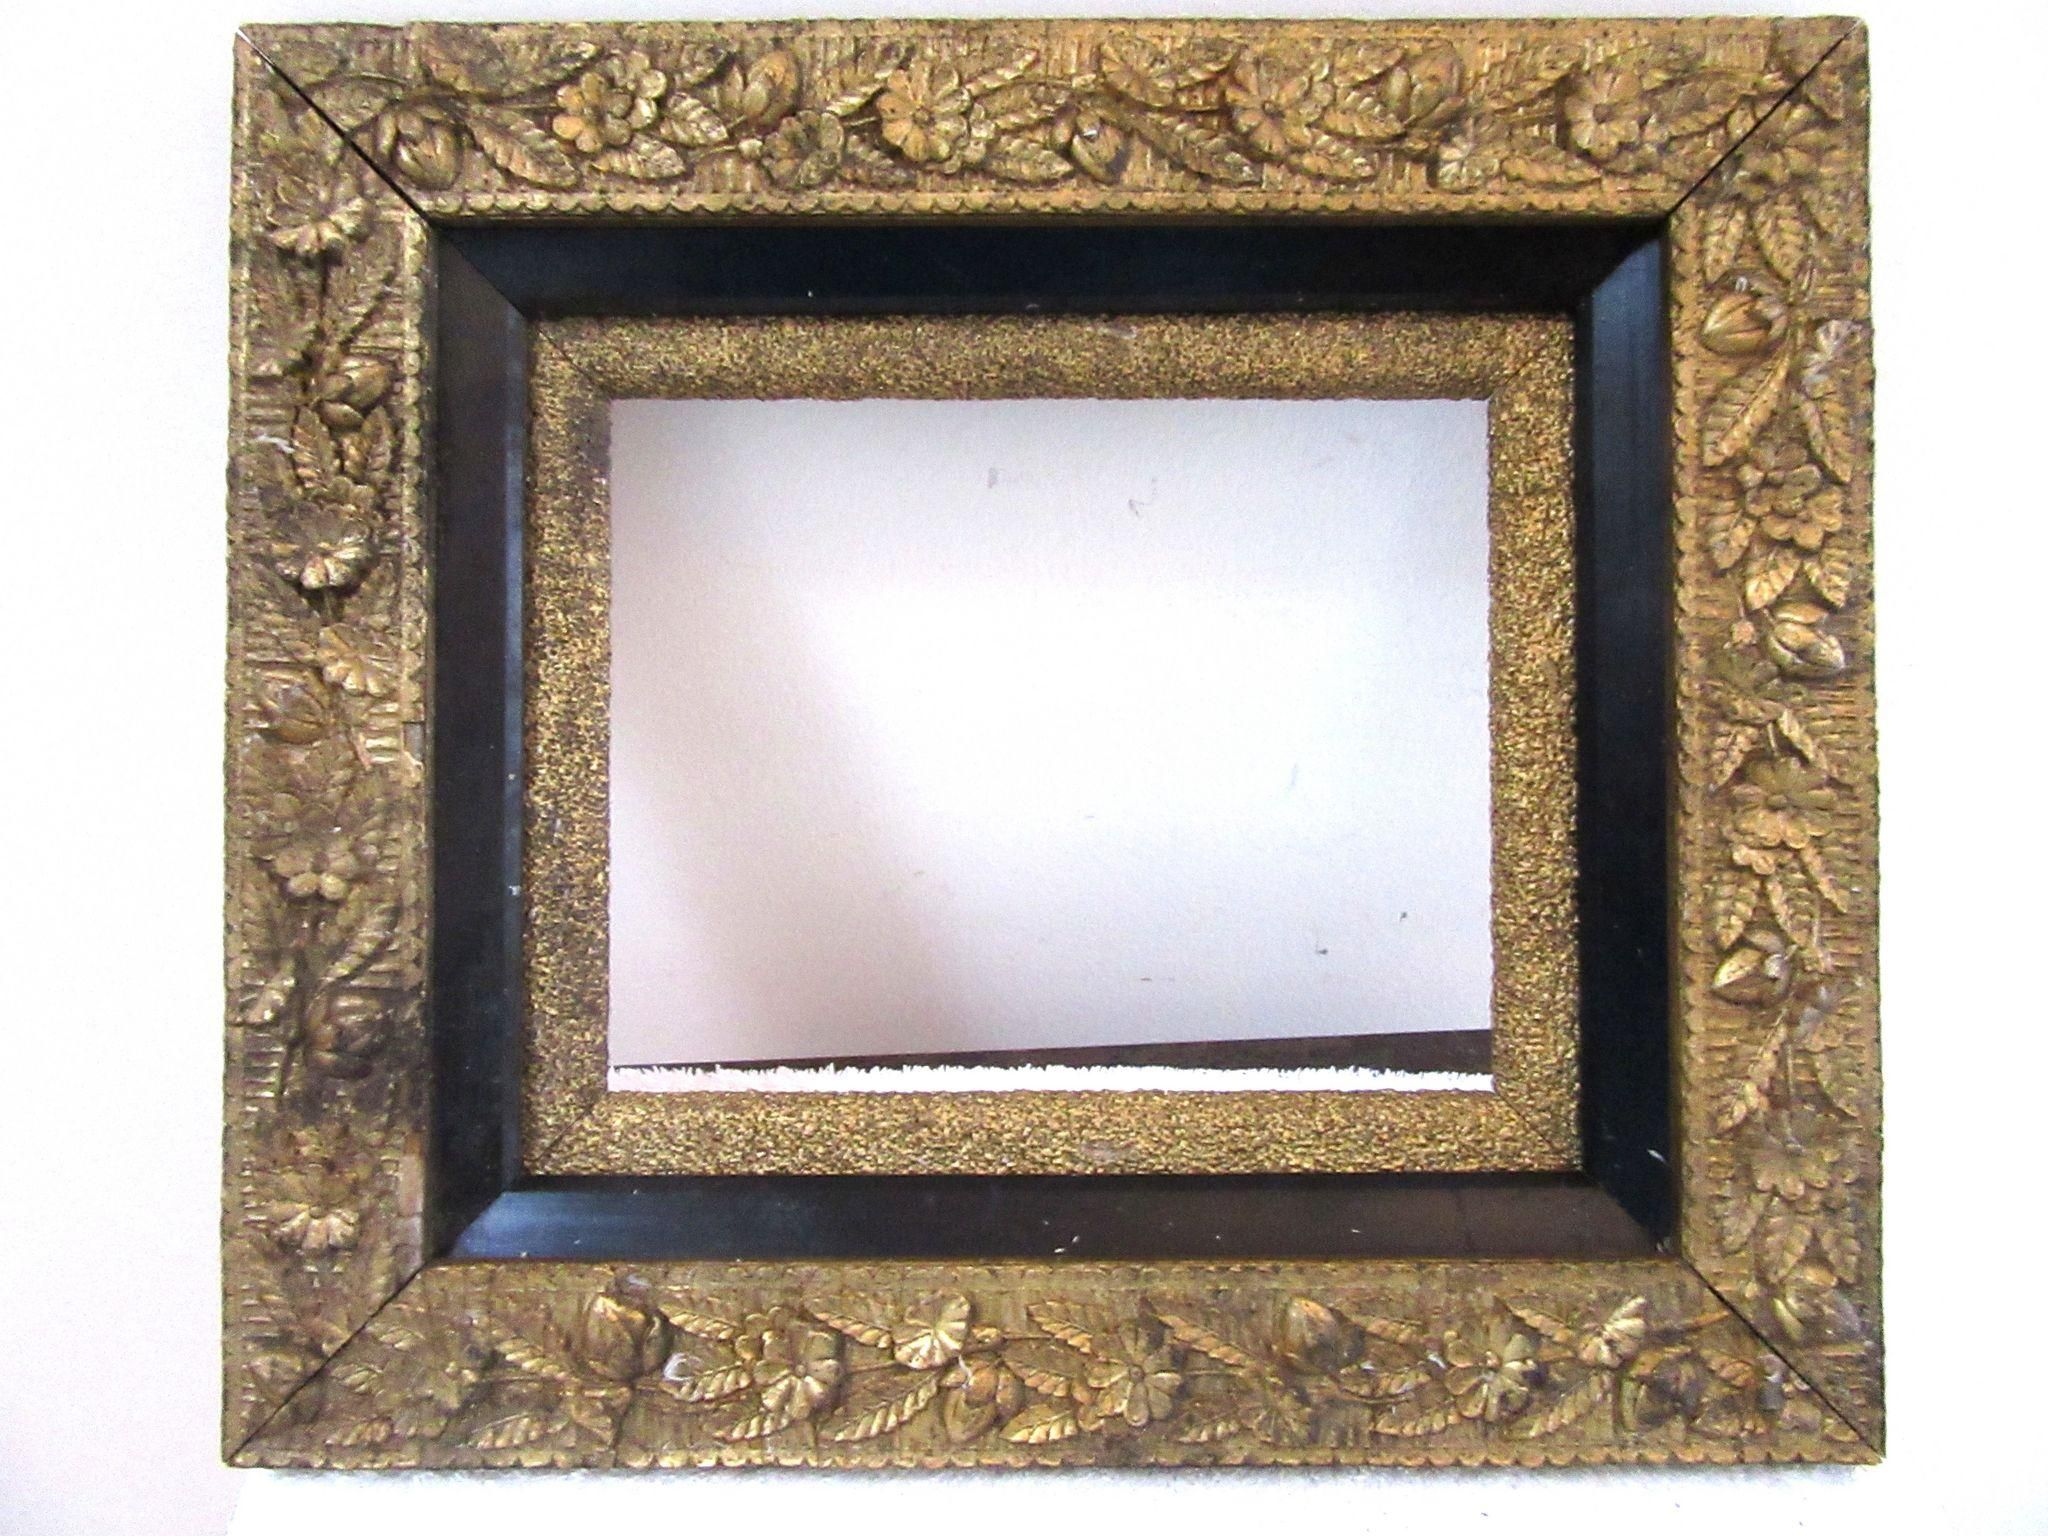 Antique Victorian Ornate Wood And Gesso Gold Gilt Picture Frame Fits 8 Quot X 10 Quot Wood Picture Frames Ornate Picture Frames